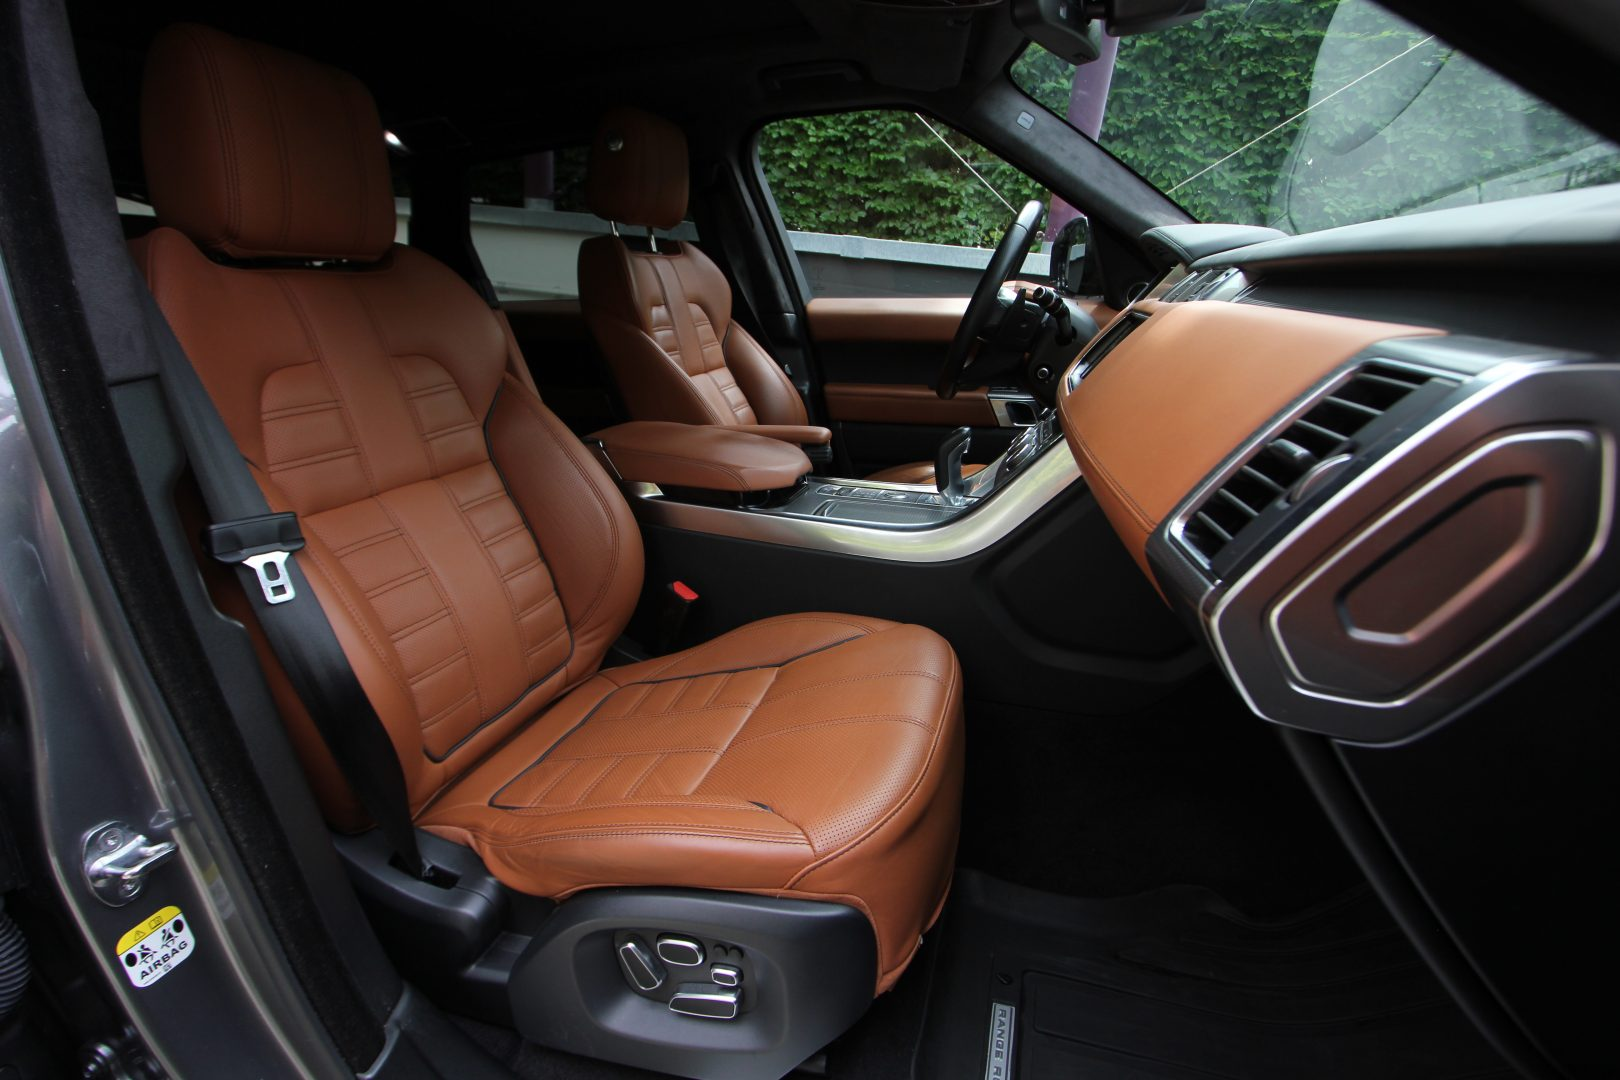 AIL Land Rover Range Rover Sport Autobiography  5.0 V8 12